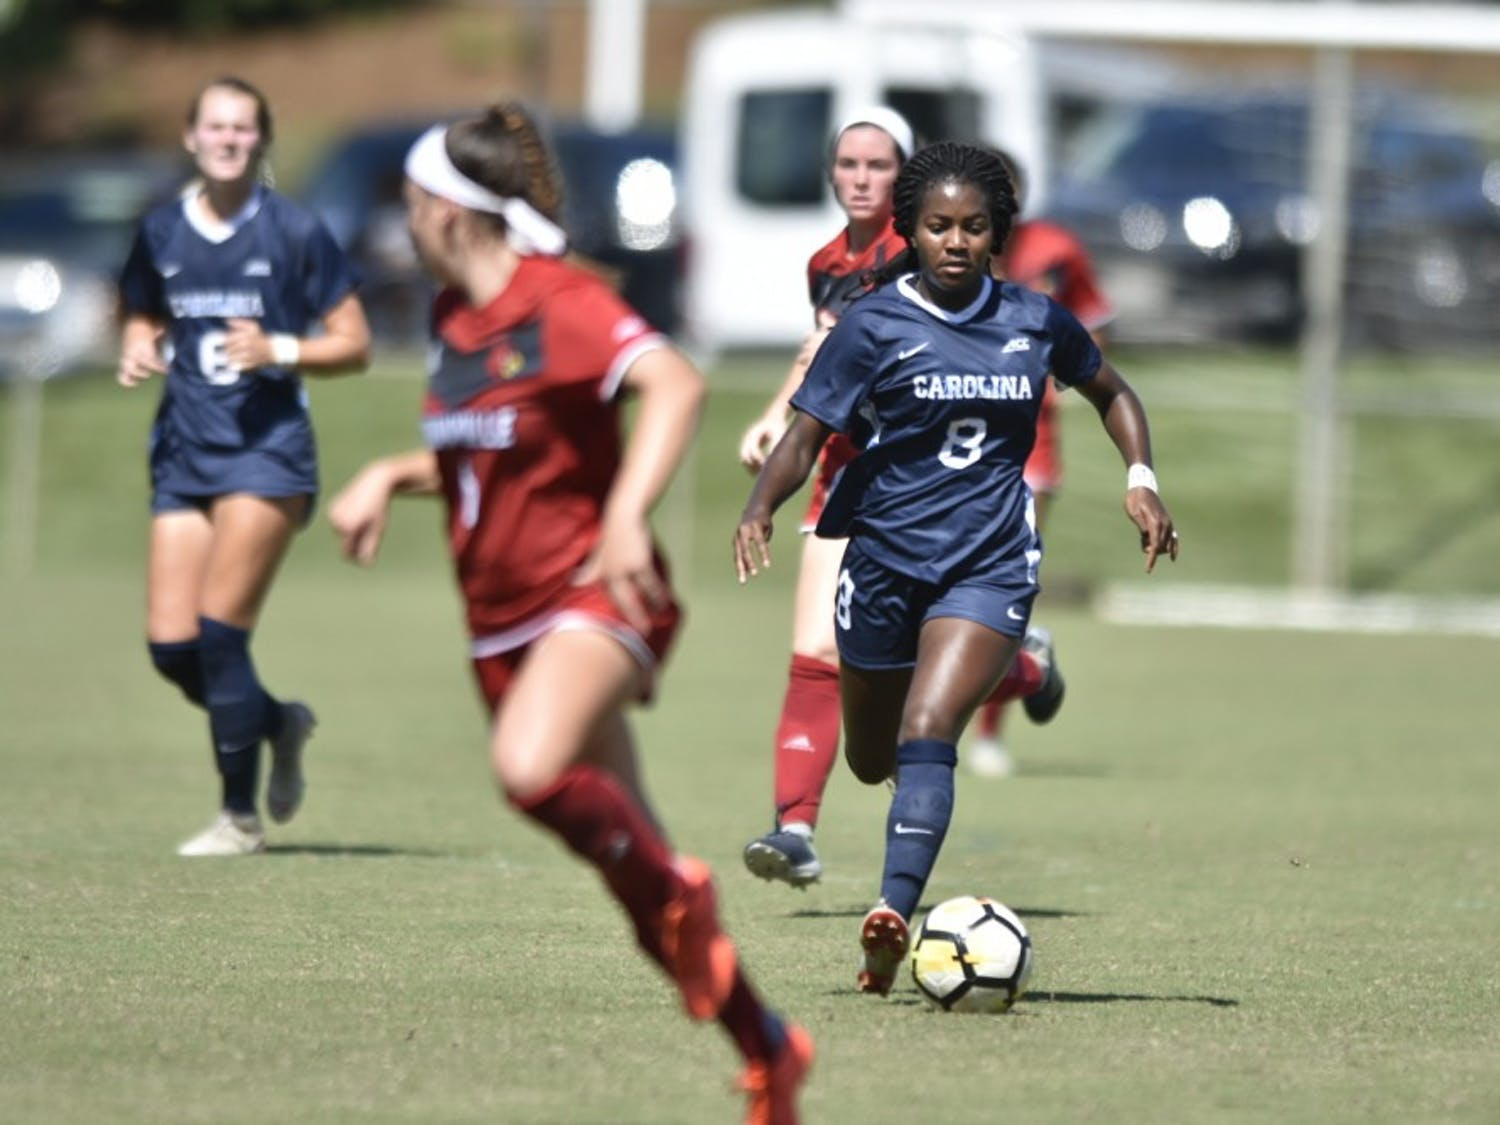 First-year midfielder Brianna Pinto dribbles the ball during UNC's 5-1 win over Louisville on Sept. 29 at WakeMed Soccer Park.